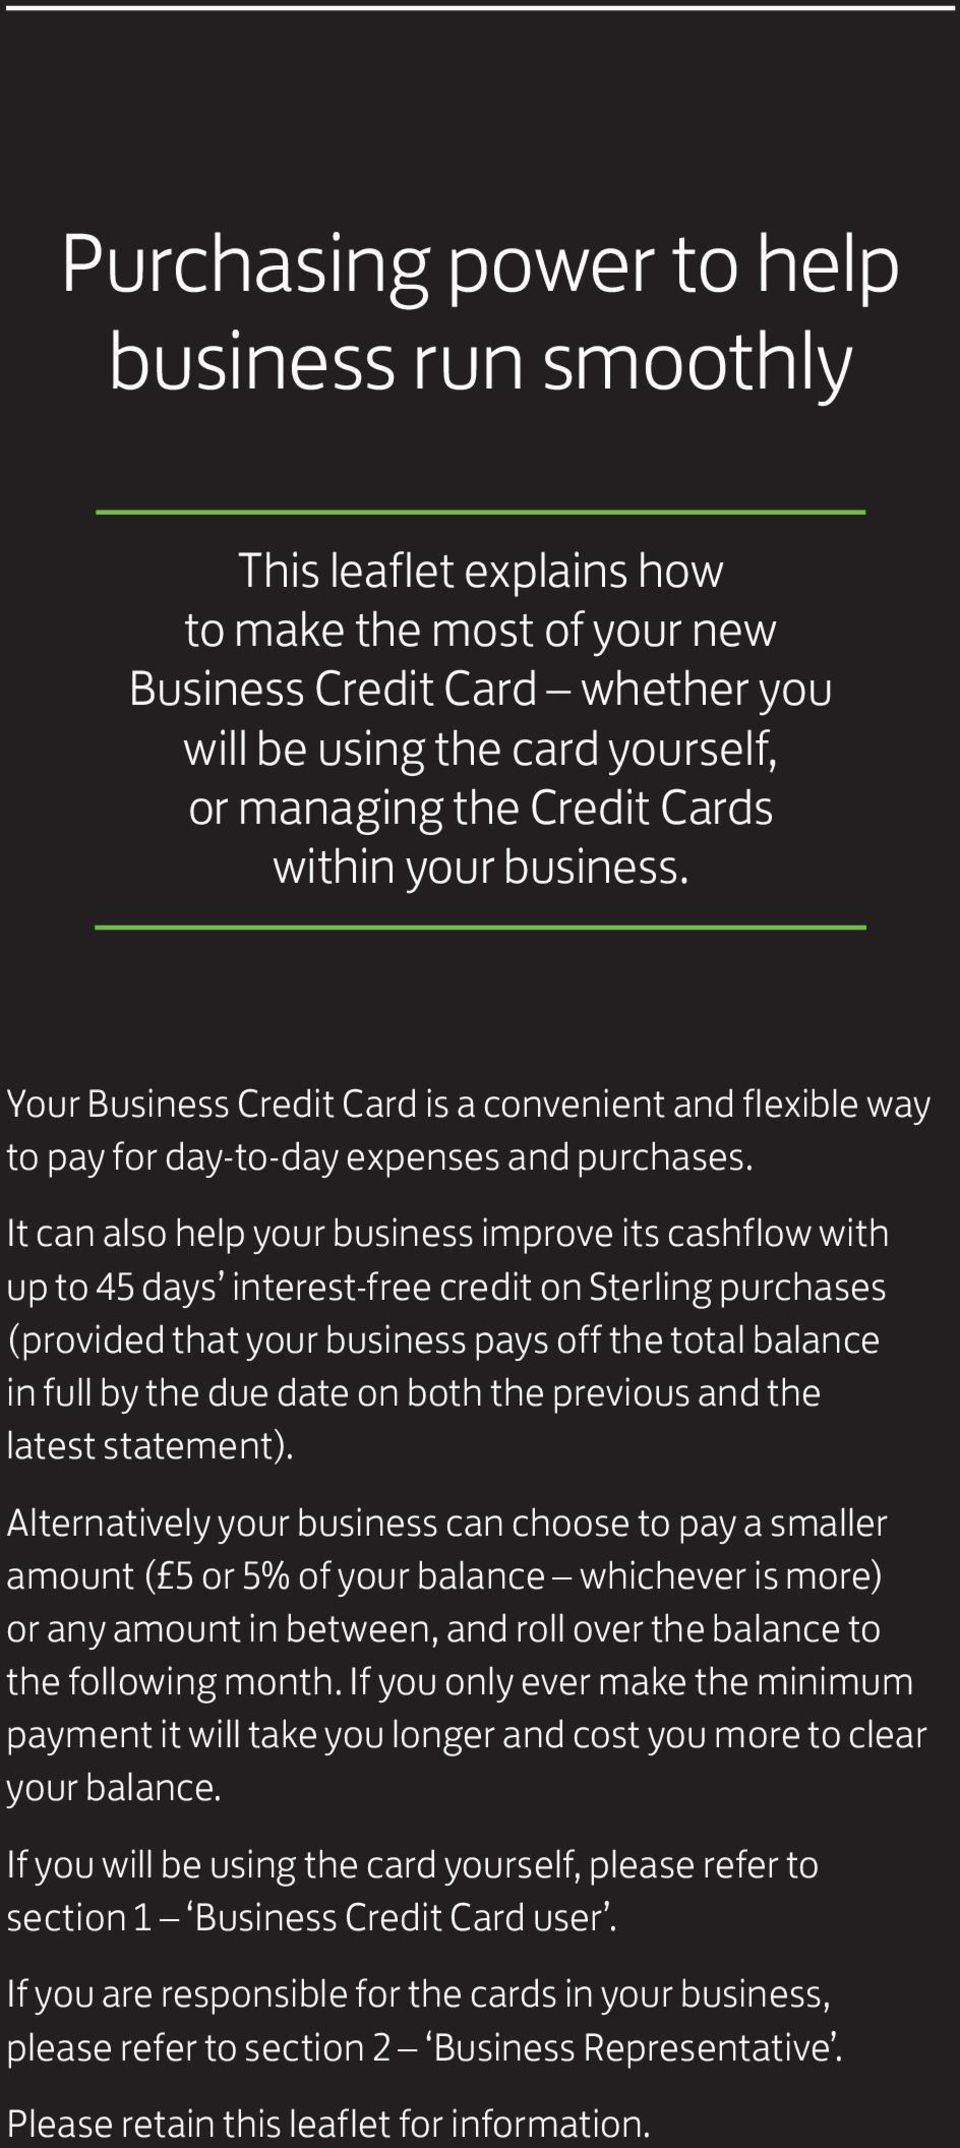 It can also help your business improve its cashflow with up to 45 days interest-free credit on Sterling purchases (provided that your business pays off the total balance in full by the due date on